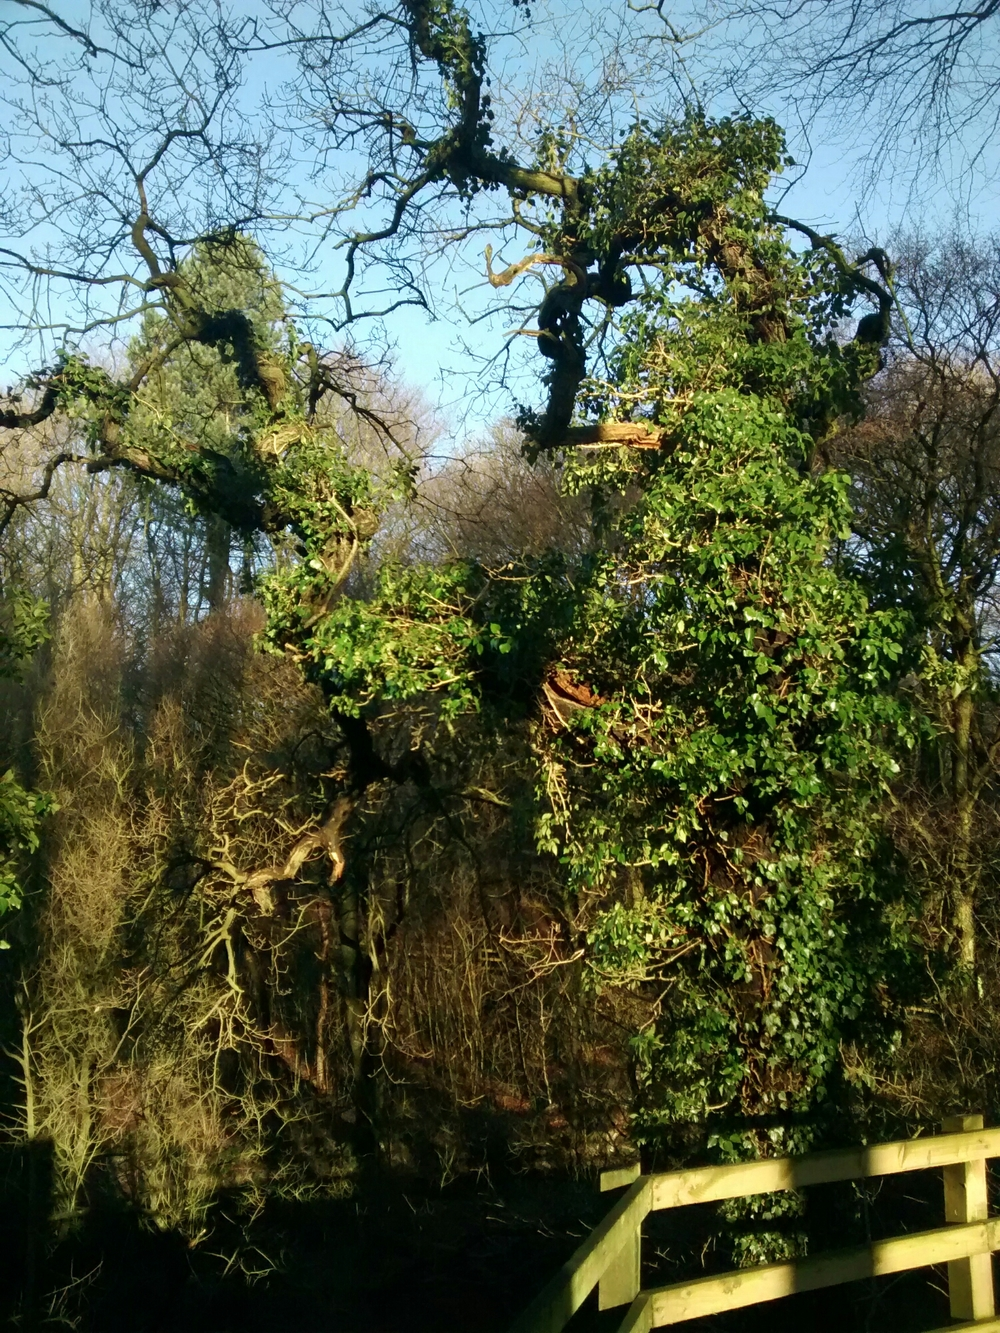 An oak tree covered in ivy, like a Christmas tree with tinsel.